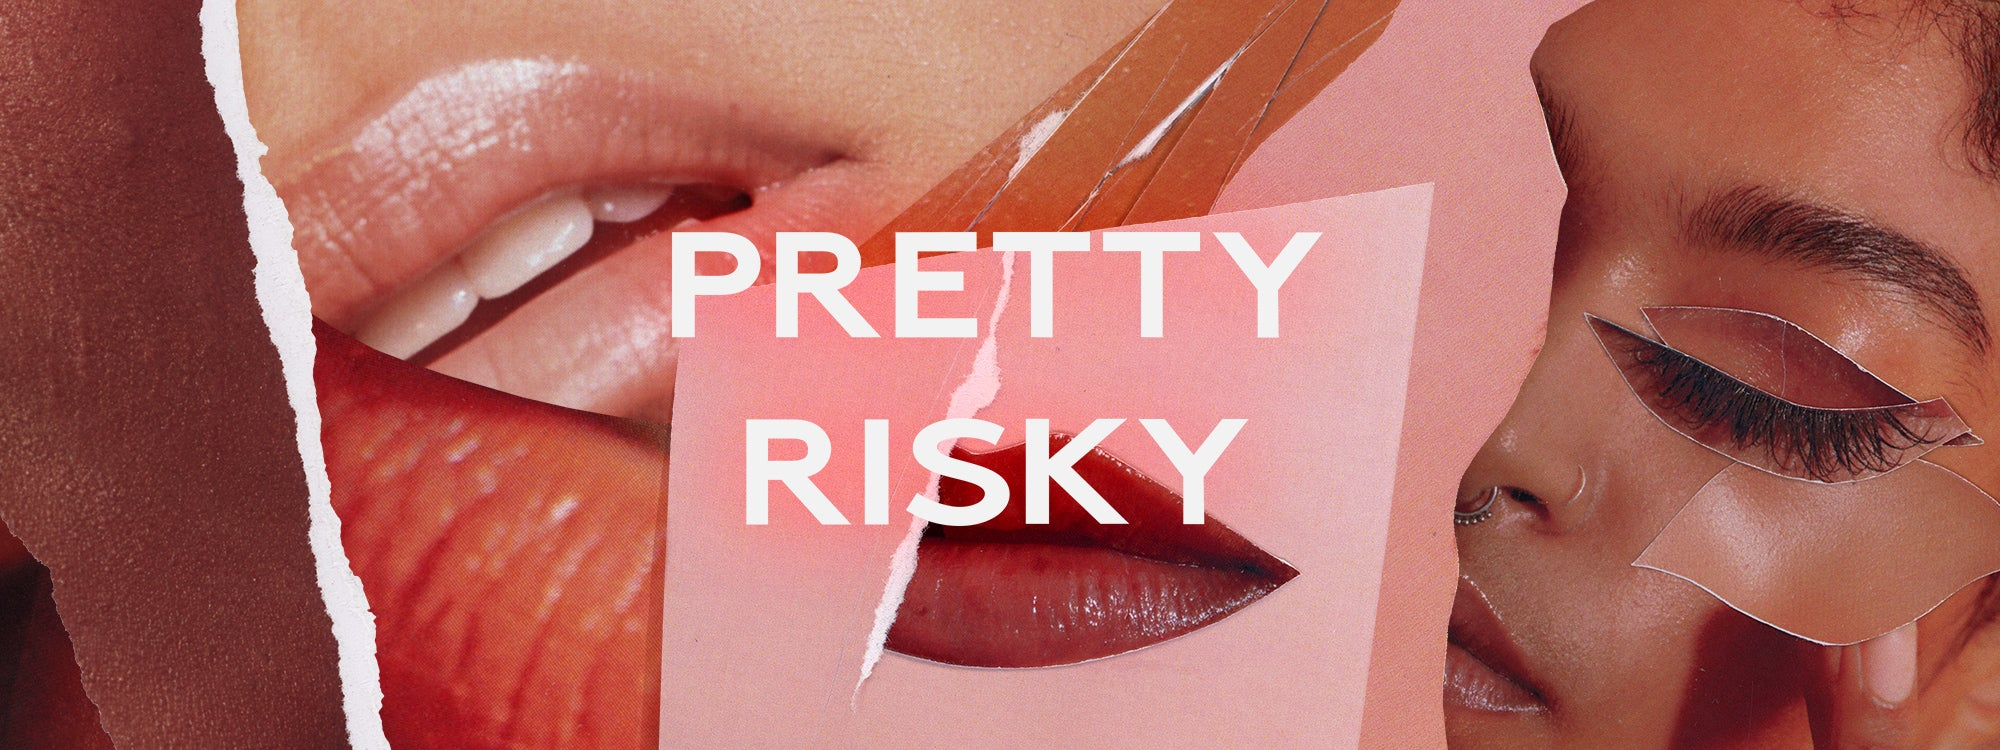 At-Home Beauty Procedures Risks